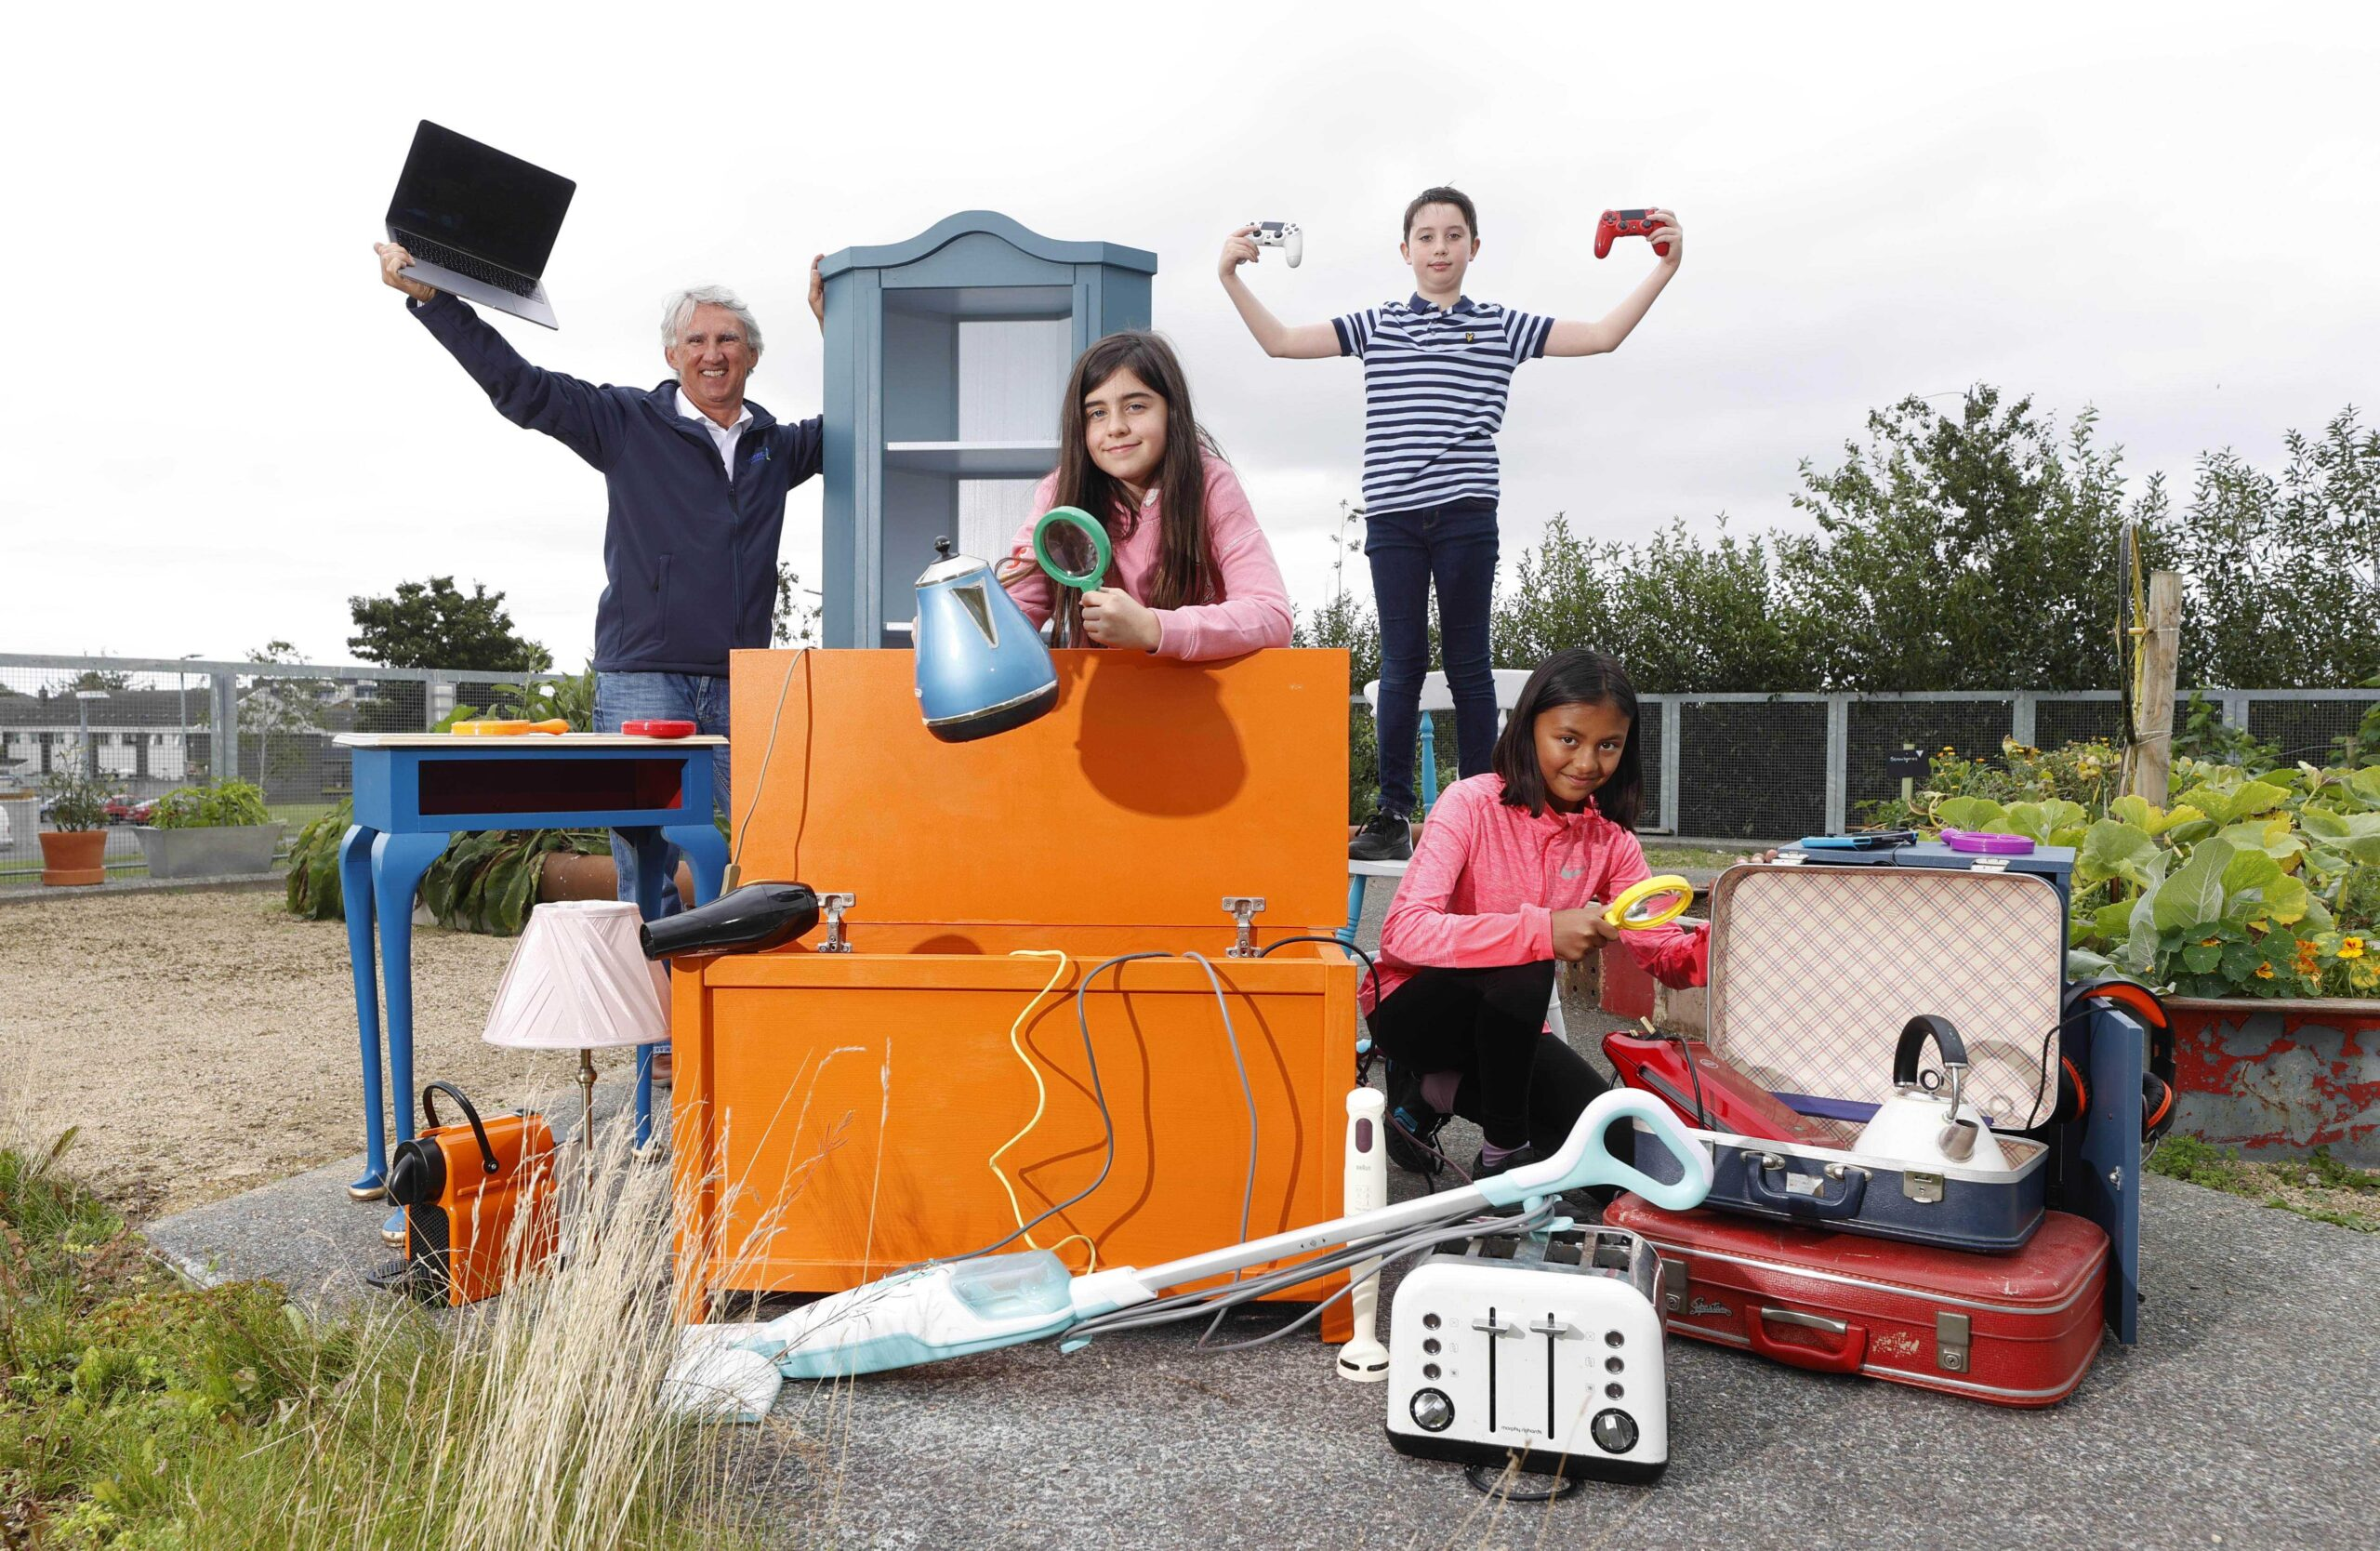 Offaly families challenged to tackle e-waste hoarding